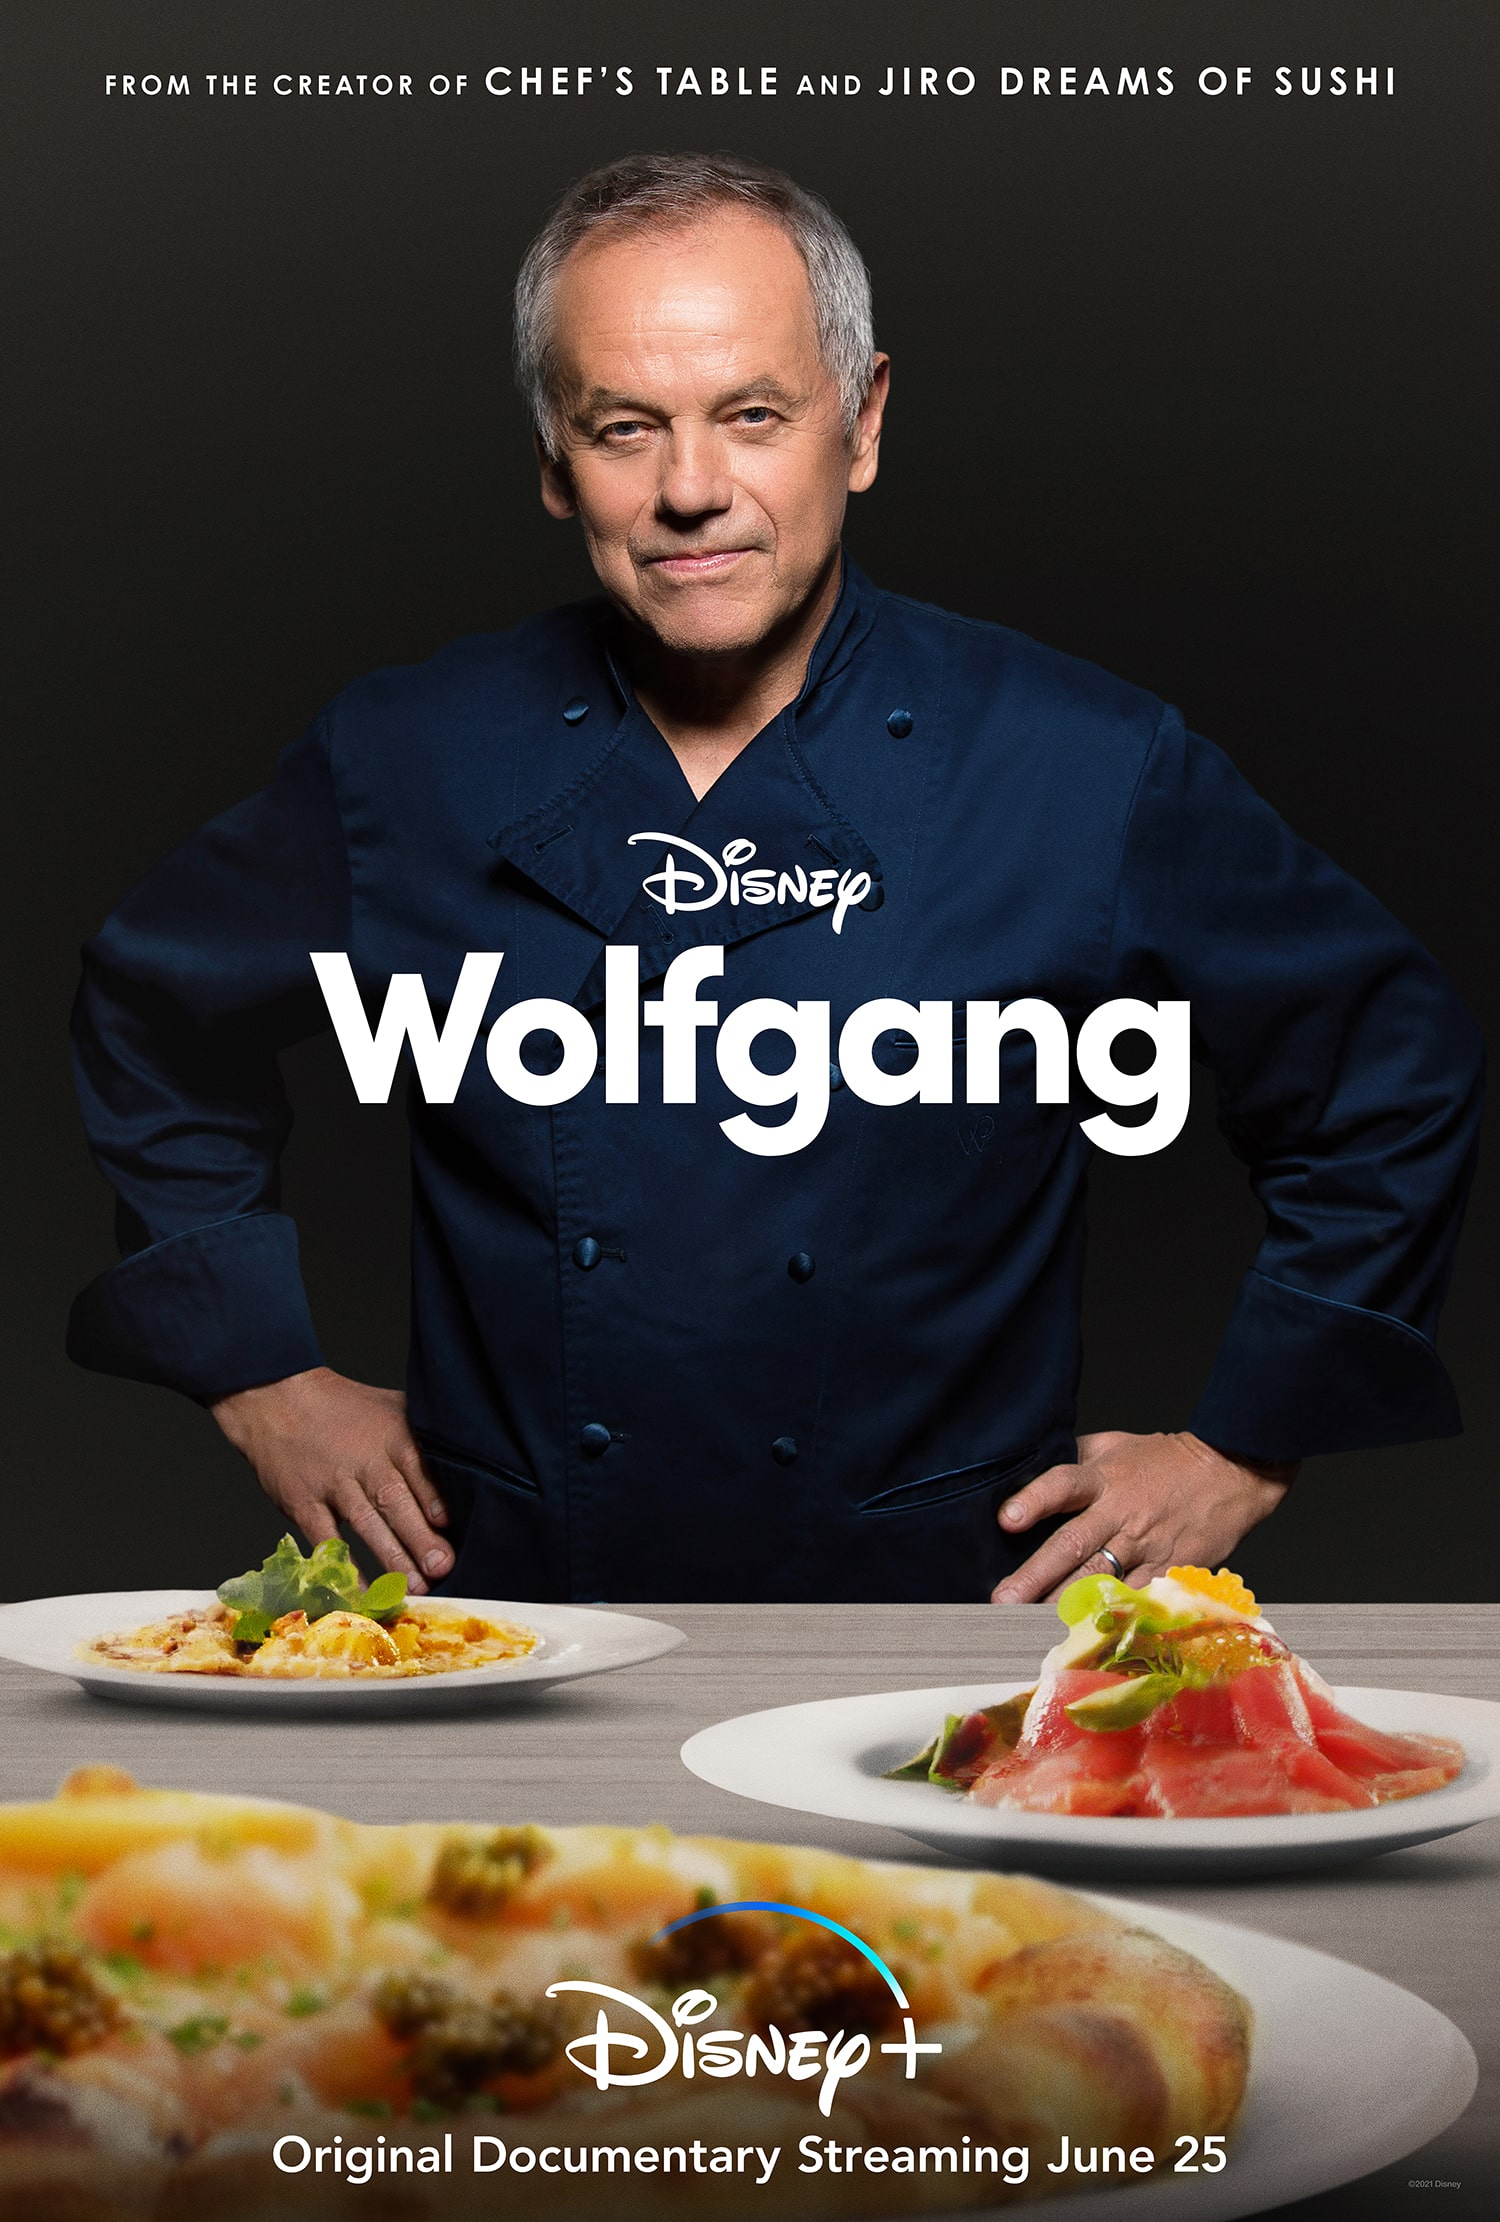 Disney+ to premiere feature documentary 'Wolfgang' on 25 June